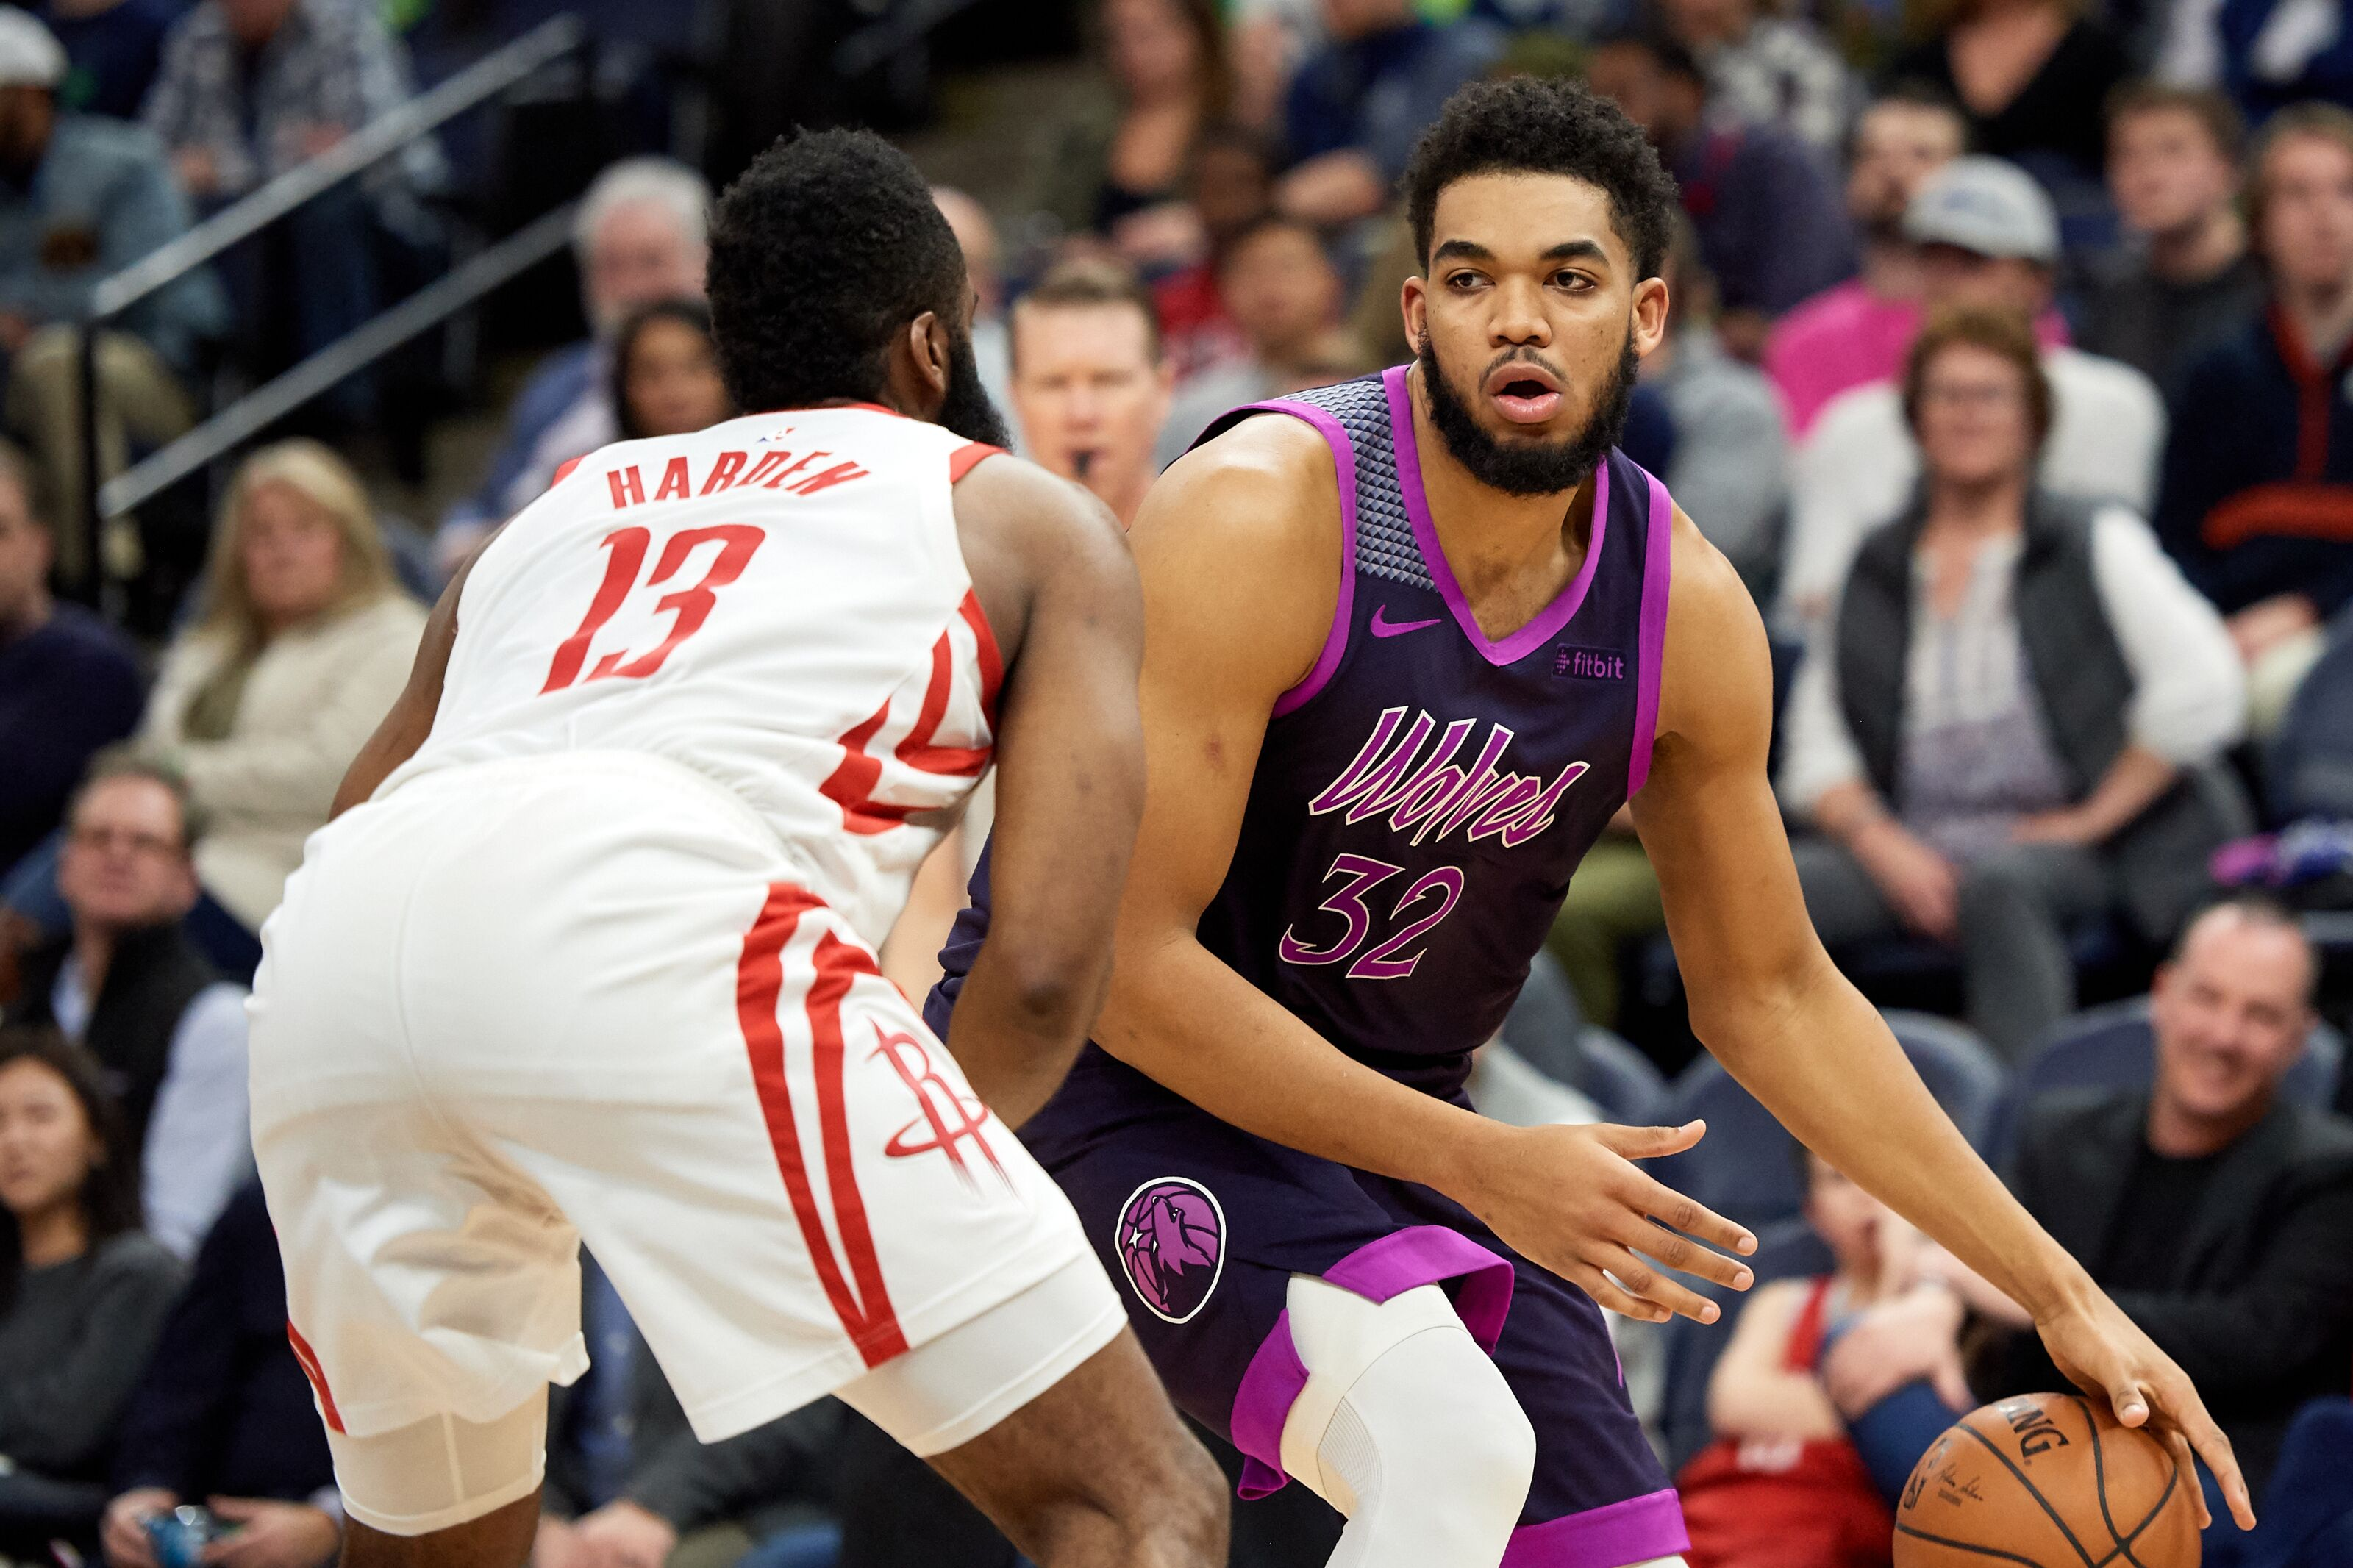 Timberwolves vs. Rockets: Odds, injuries, and what to watch for